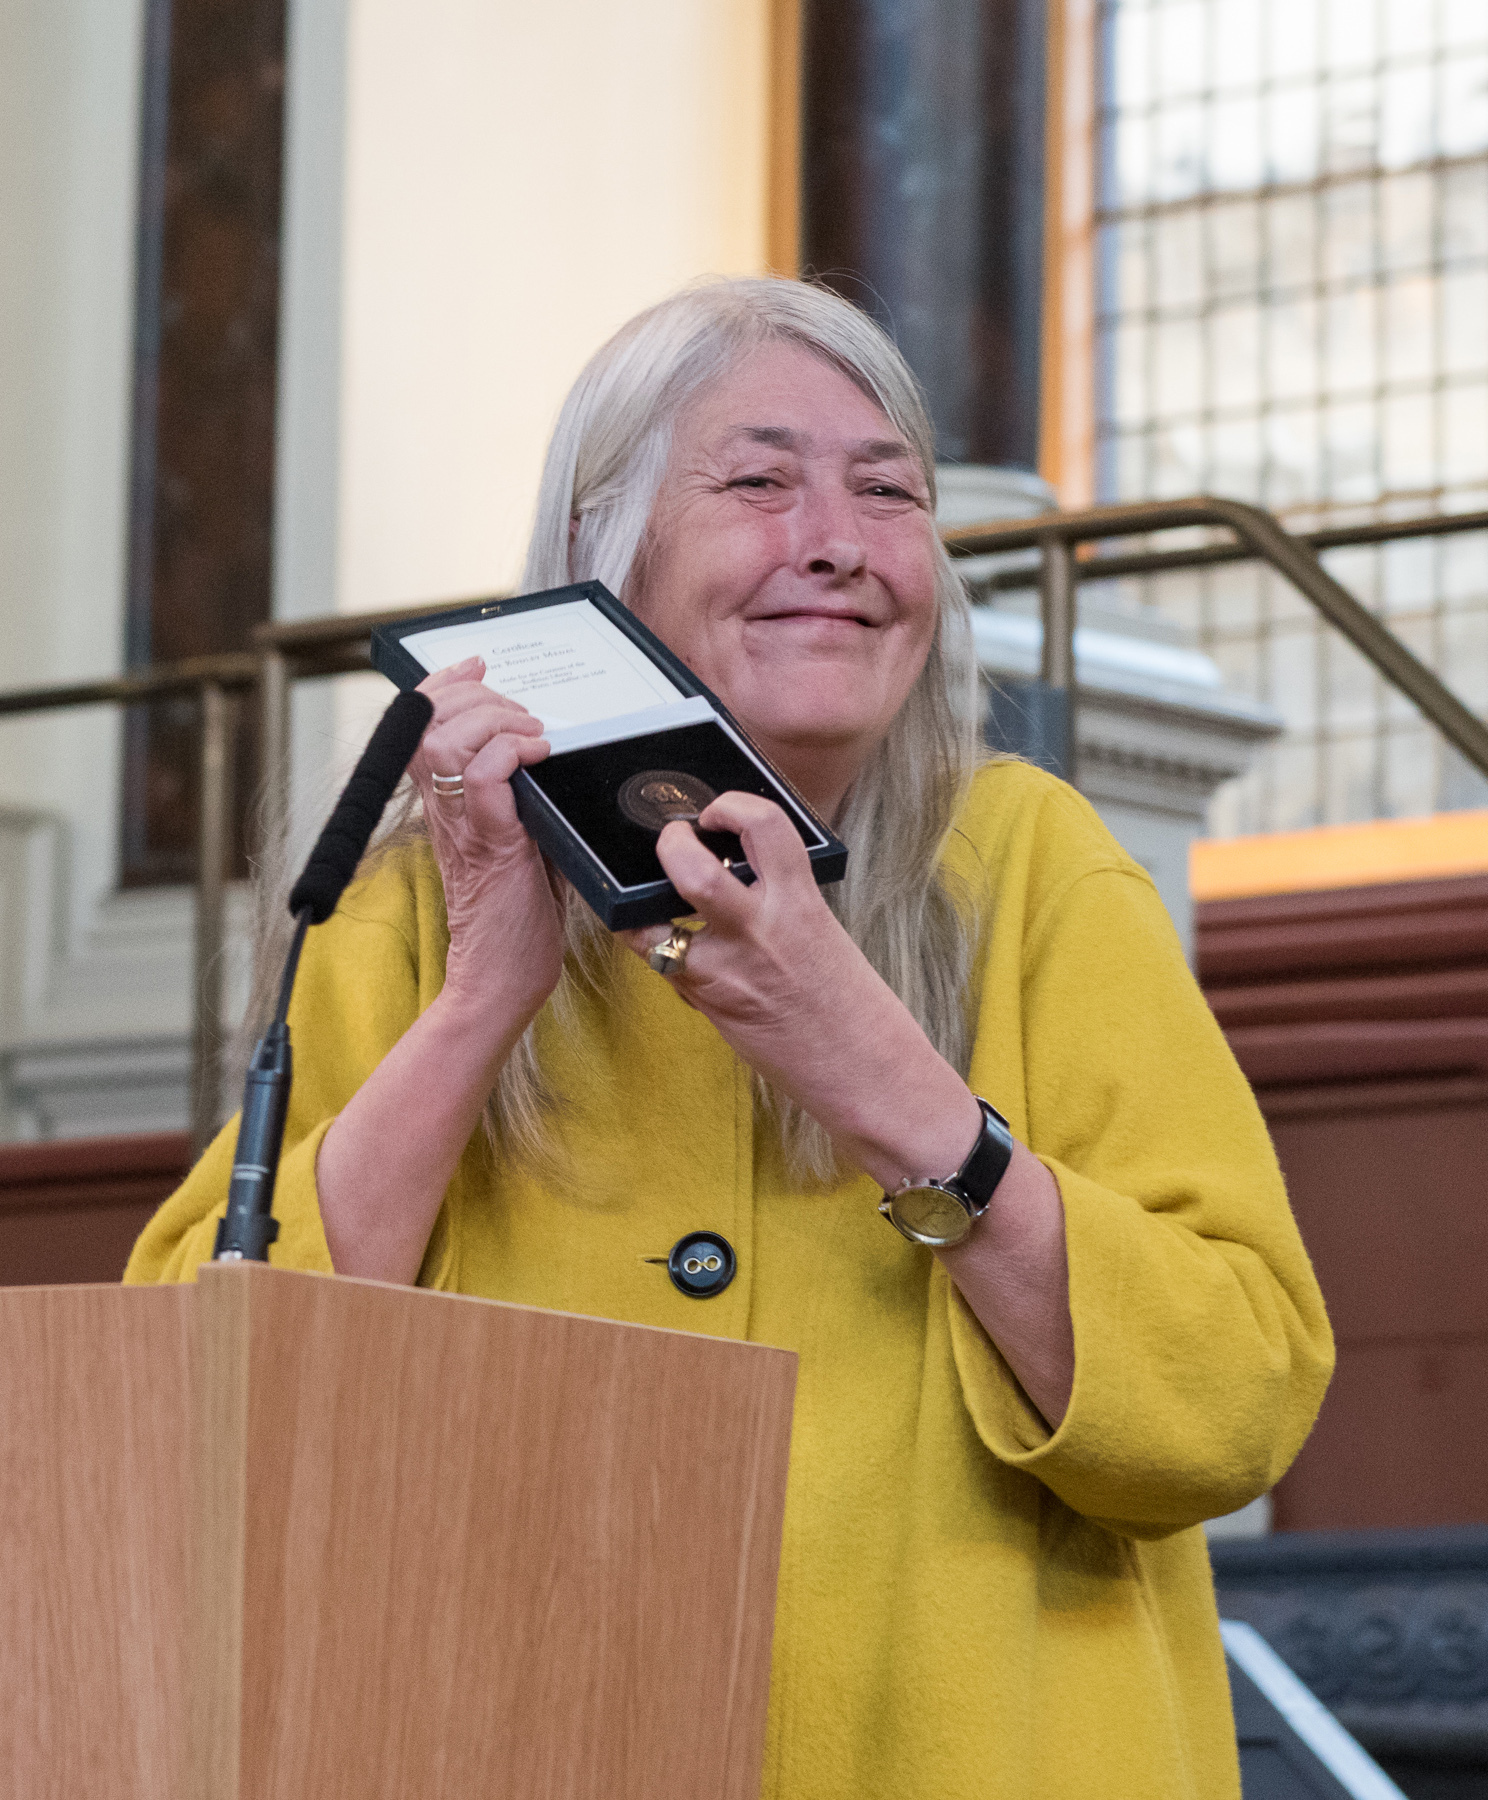 Prof. Mary Beard receiving the Bodley Medal.